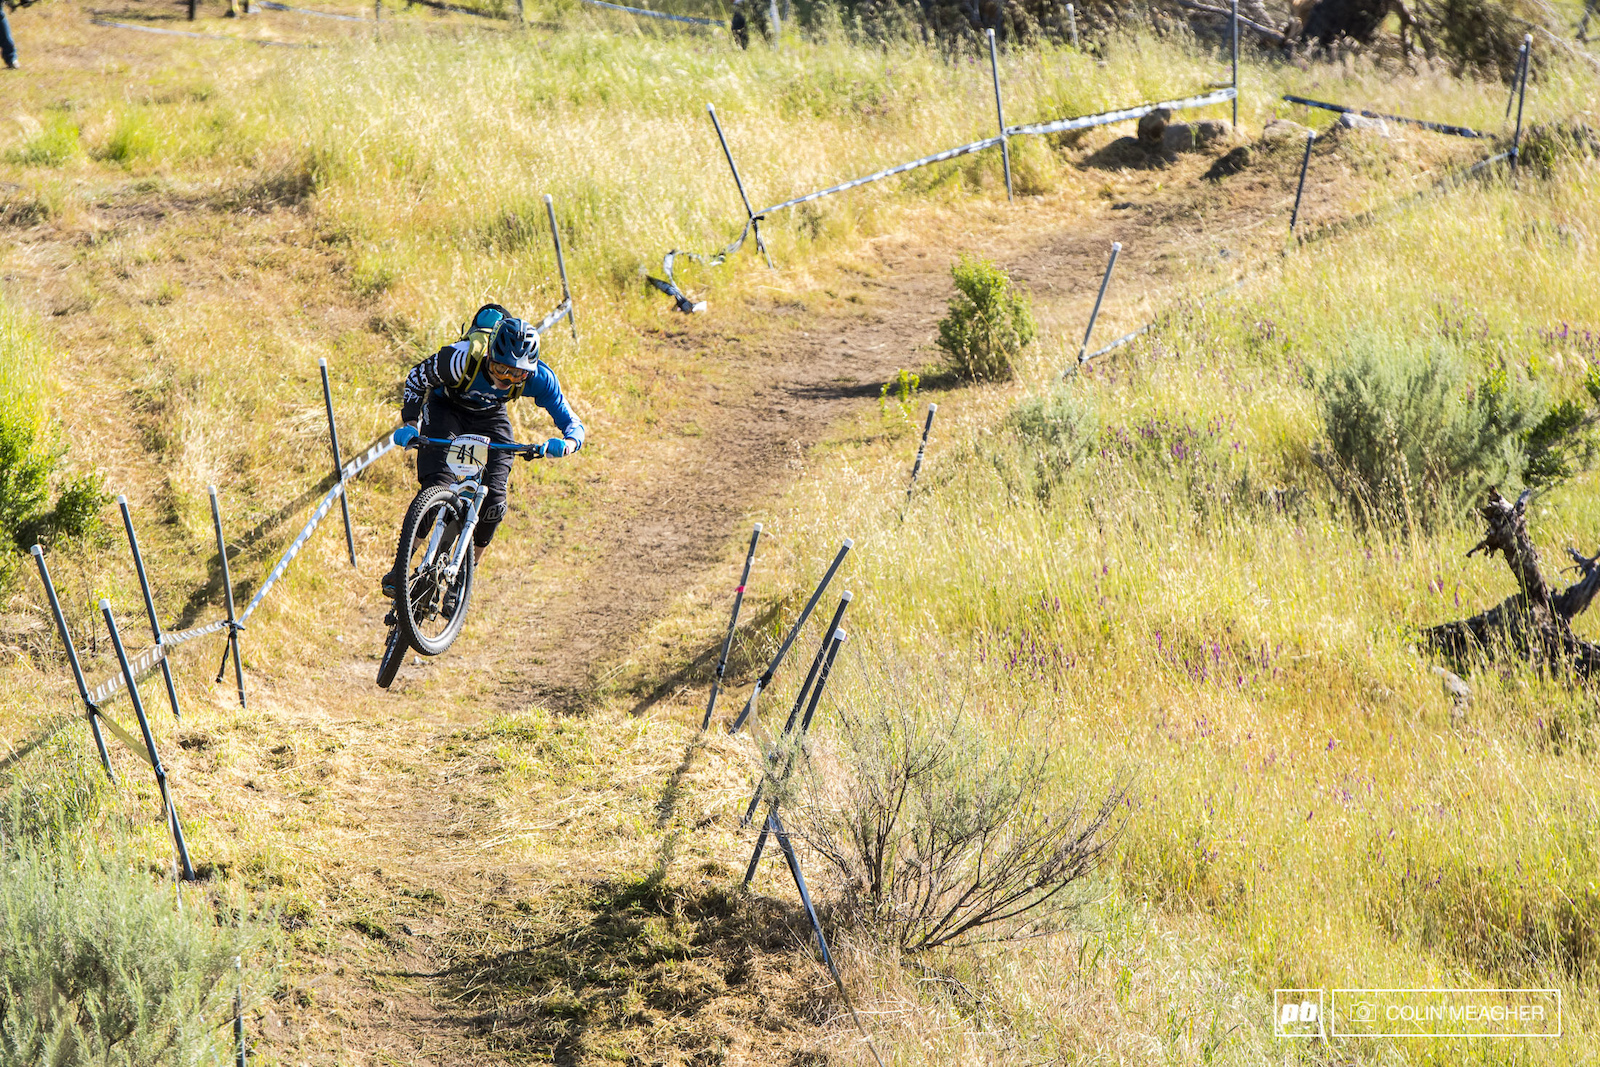 Dan Chiang getting a bit loose on stage one of the Enduro.